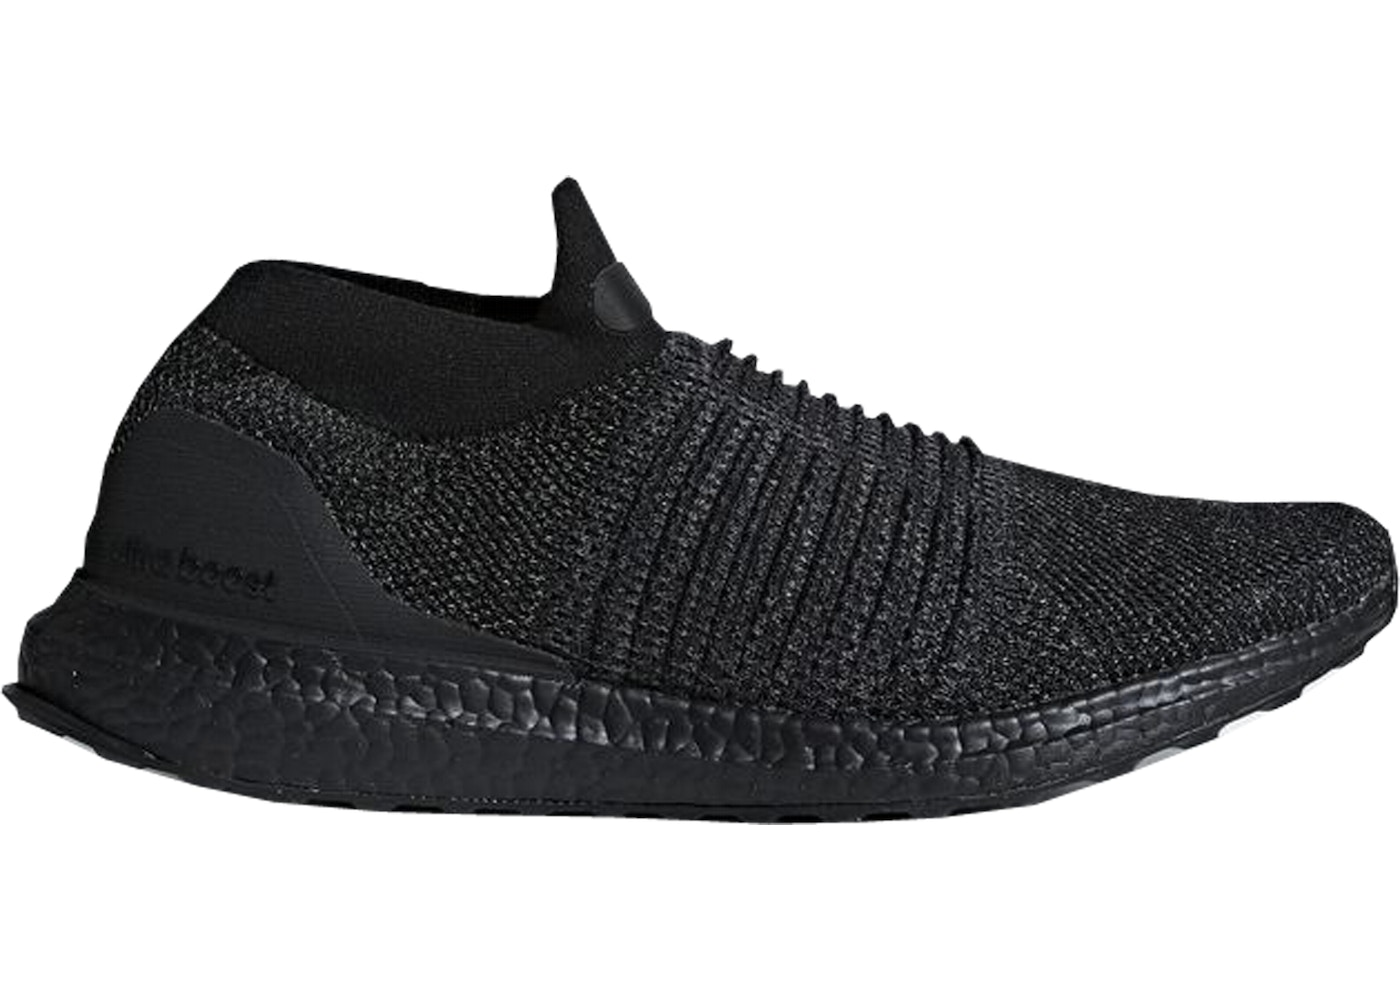 77b03a89091b2 adidas Ultra Boost Size 7 Shoes - Average Sale Price